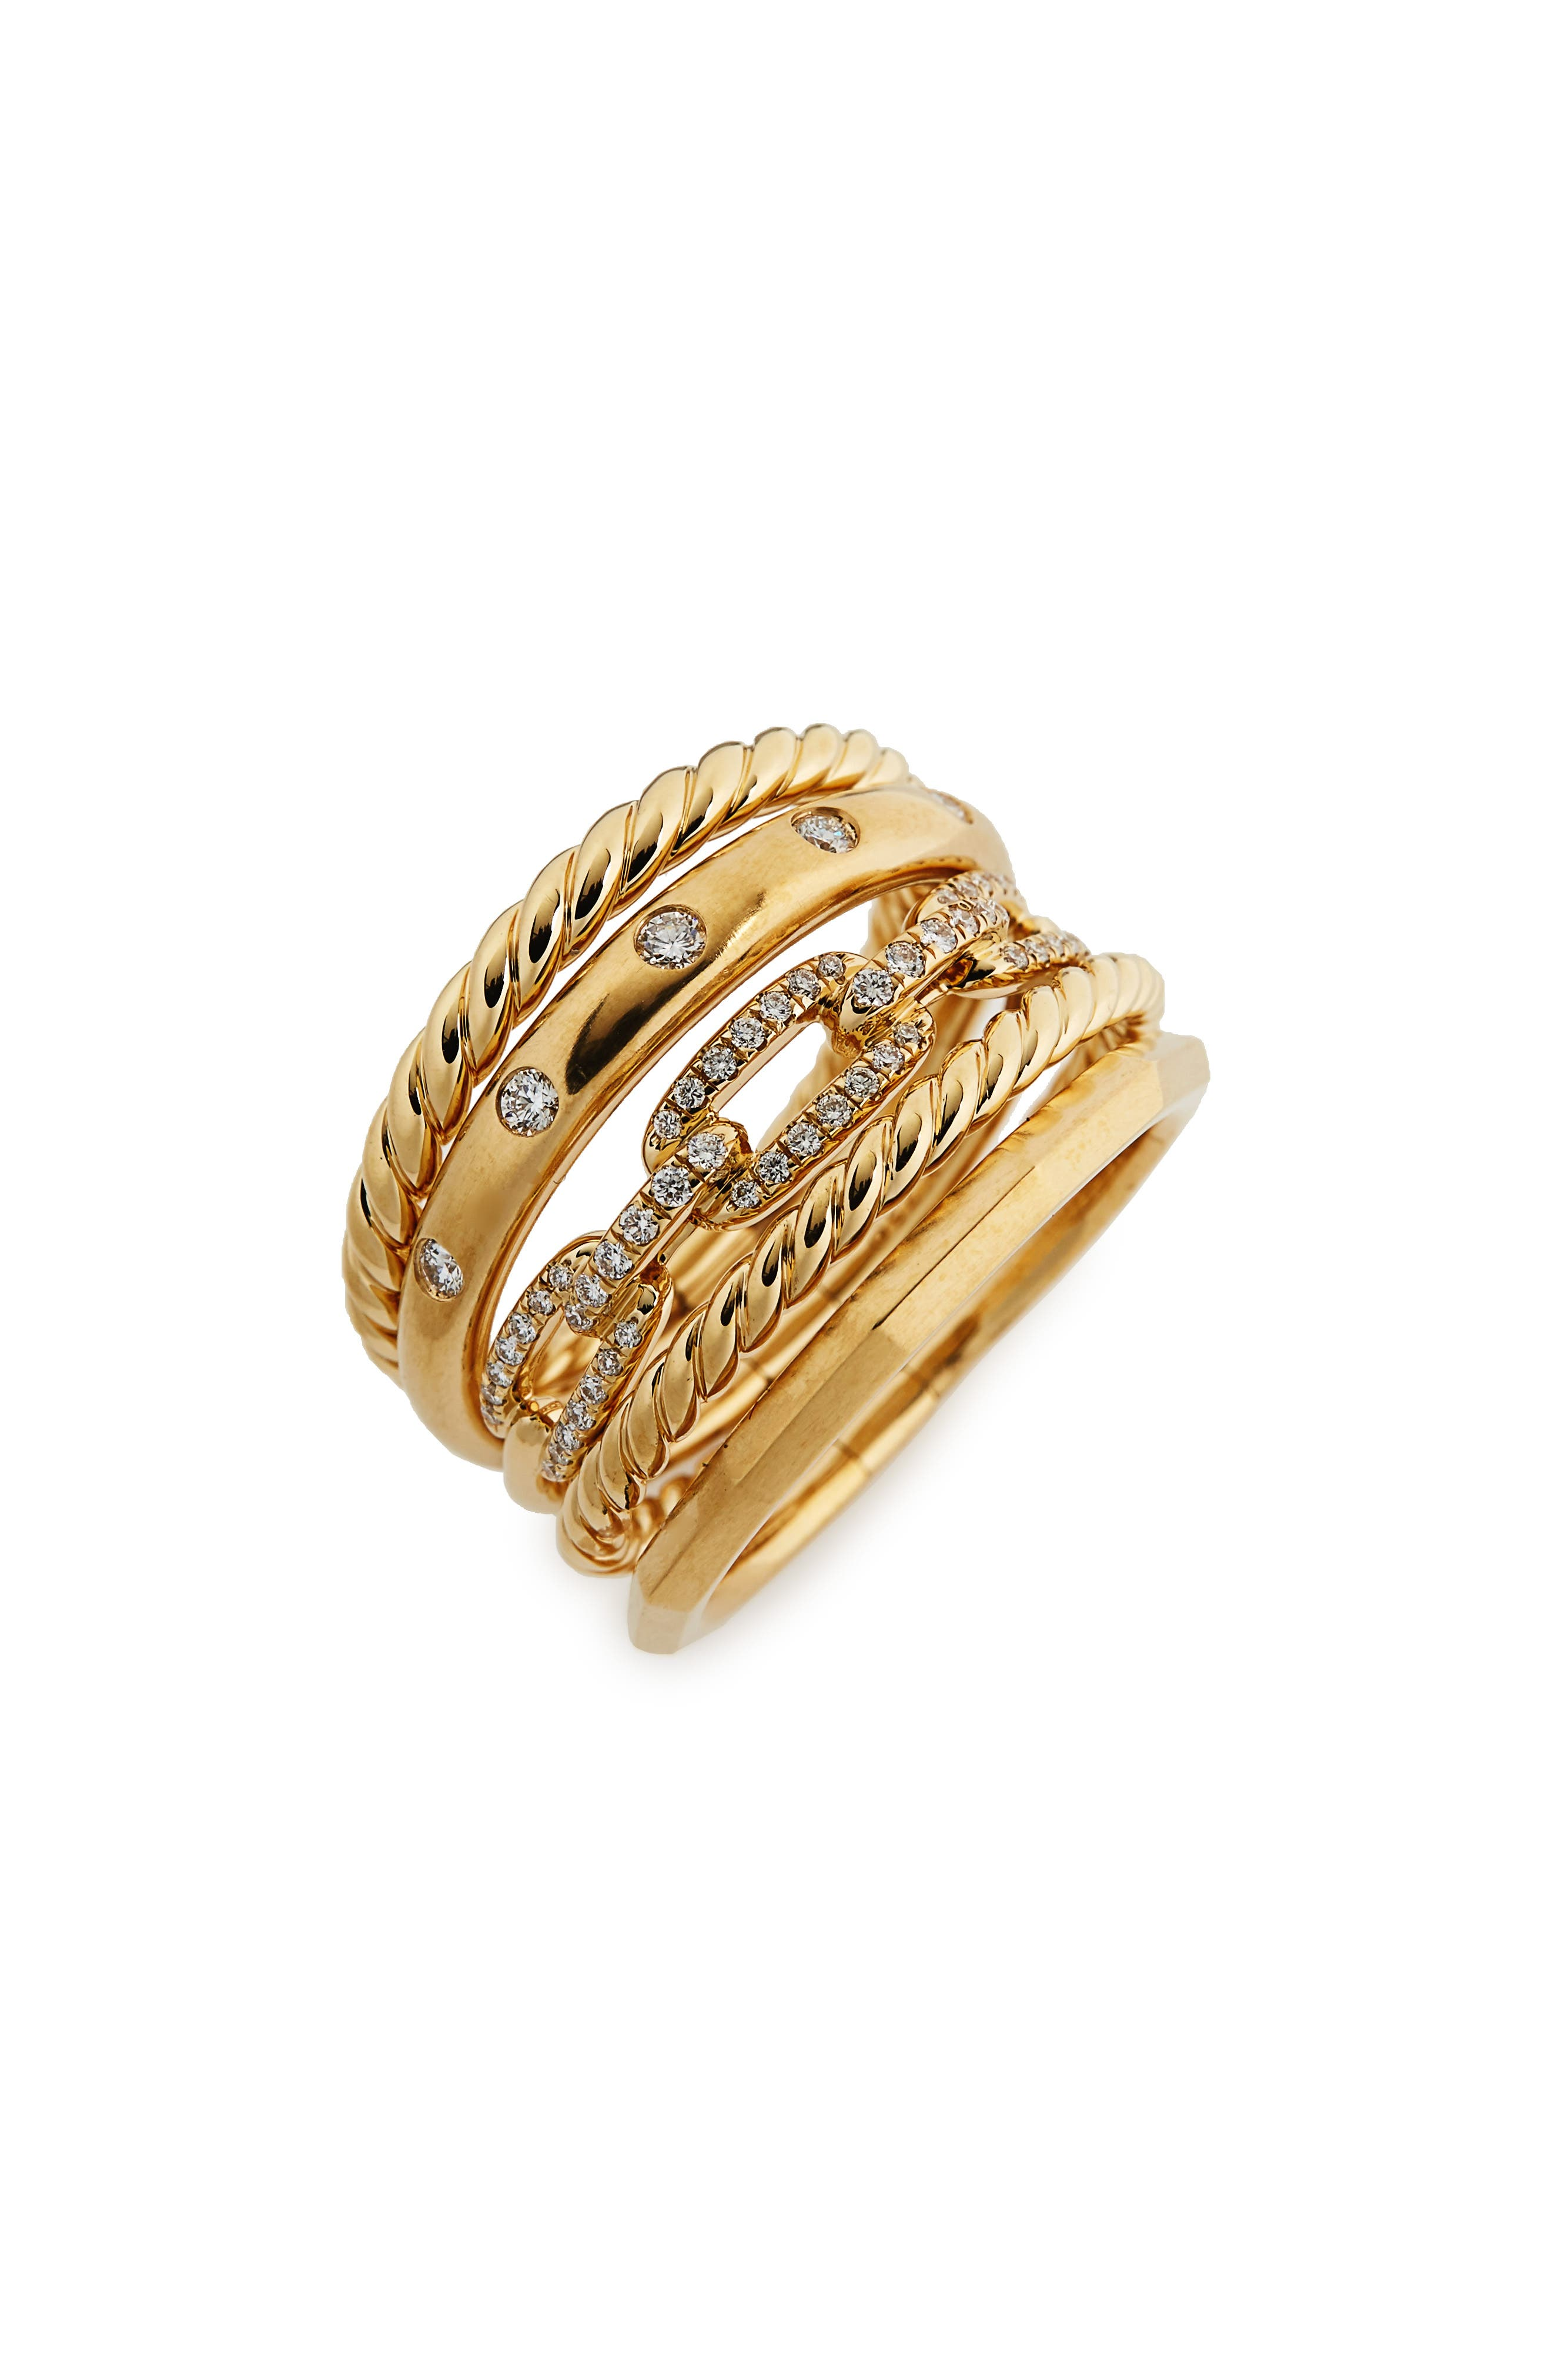 David Yurman Stax Wide Ring with Diamonds in 18K Gold, 15mm